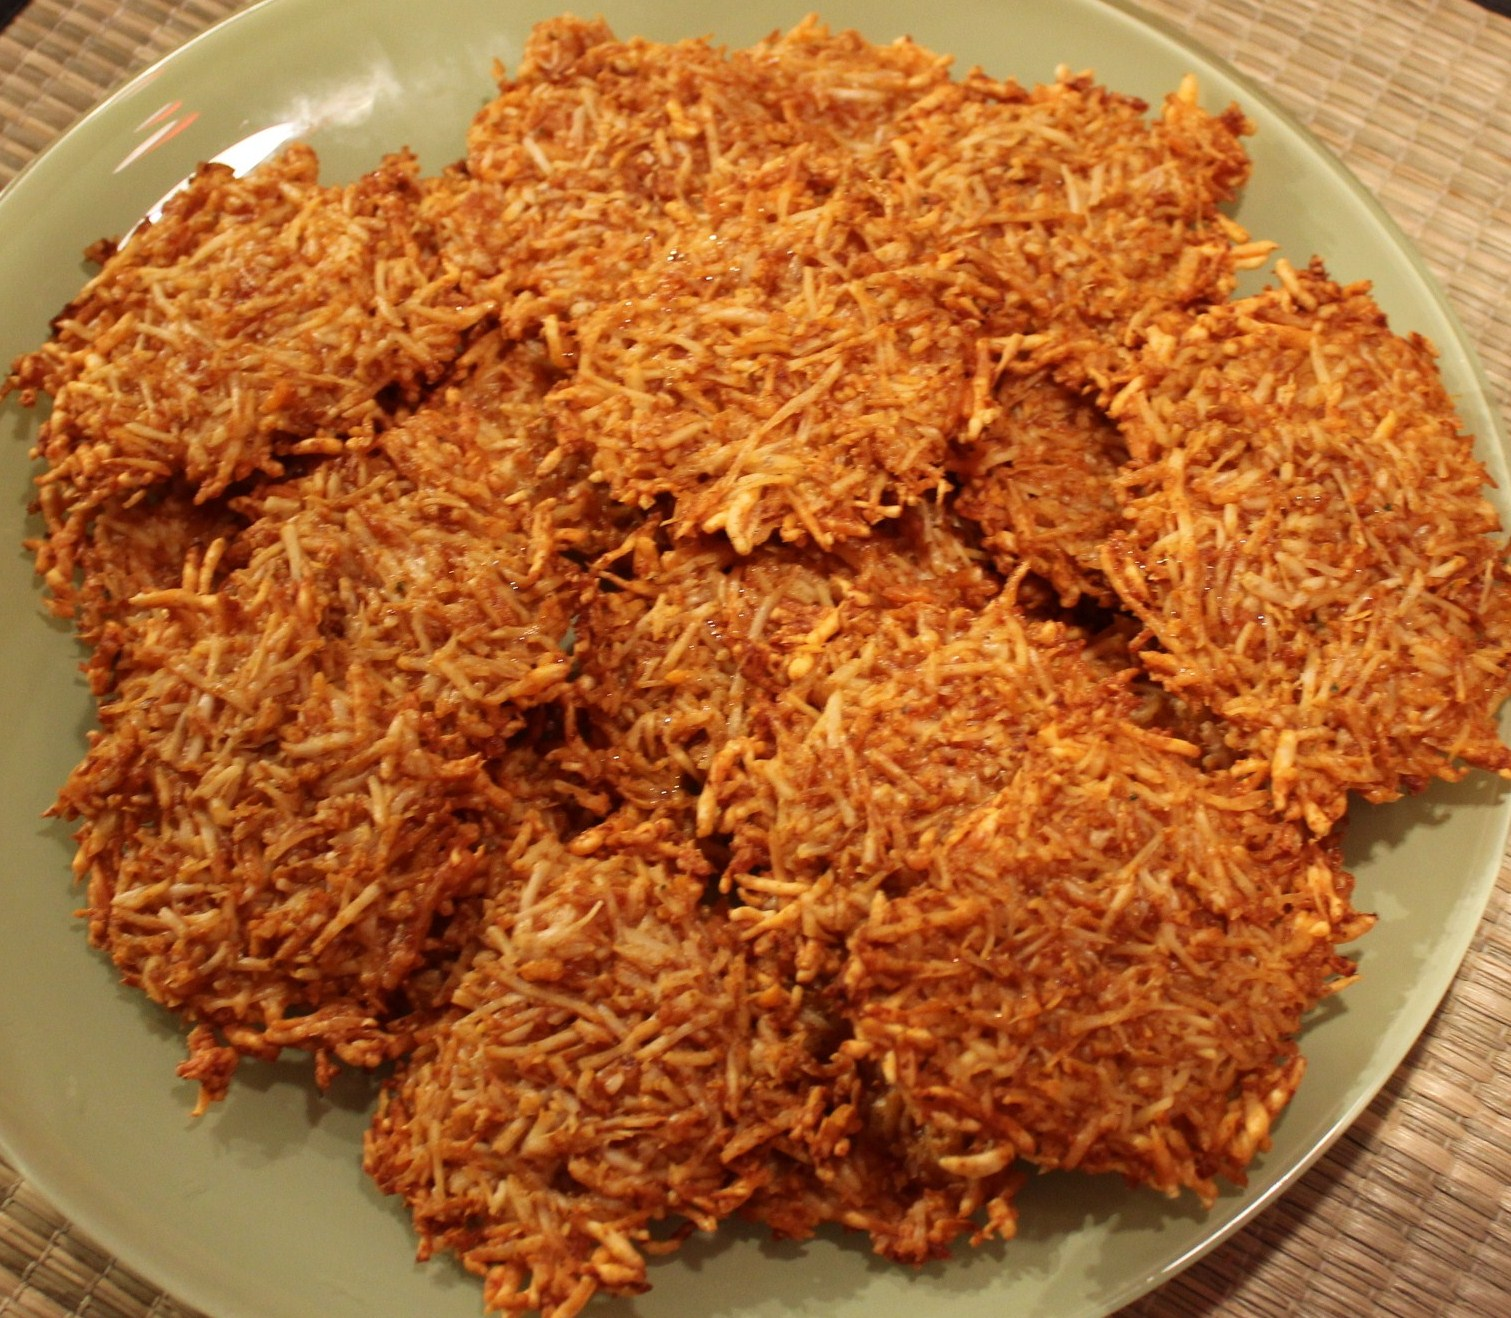 Easy, Cheesy Smoked Paprika Parmesan Crisps | Kel's Cafe of All Things ...